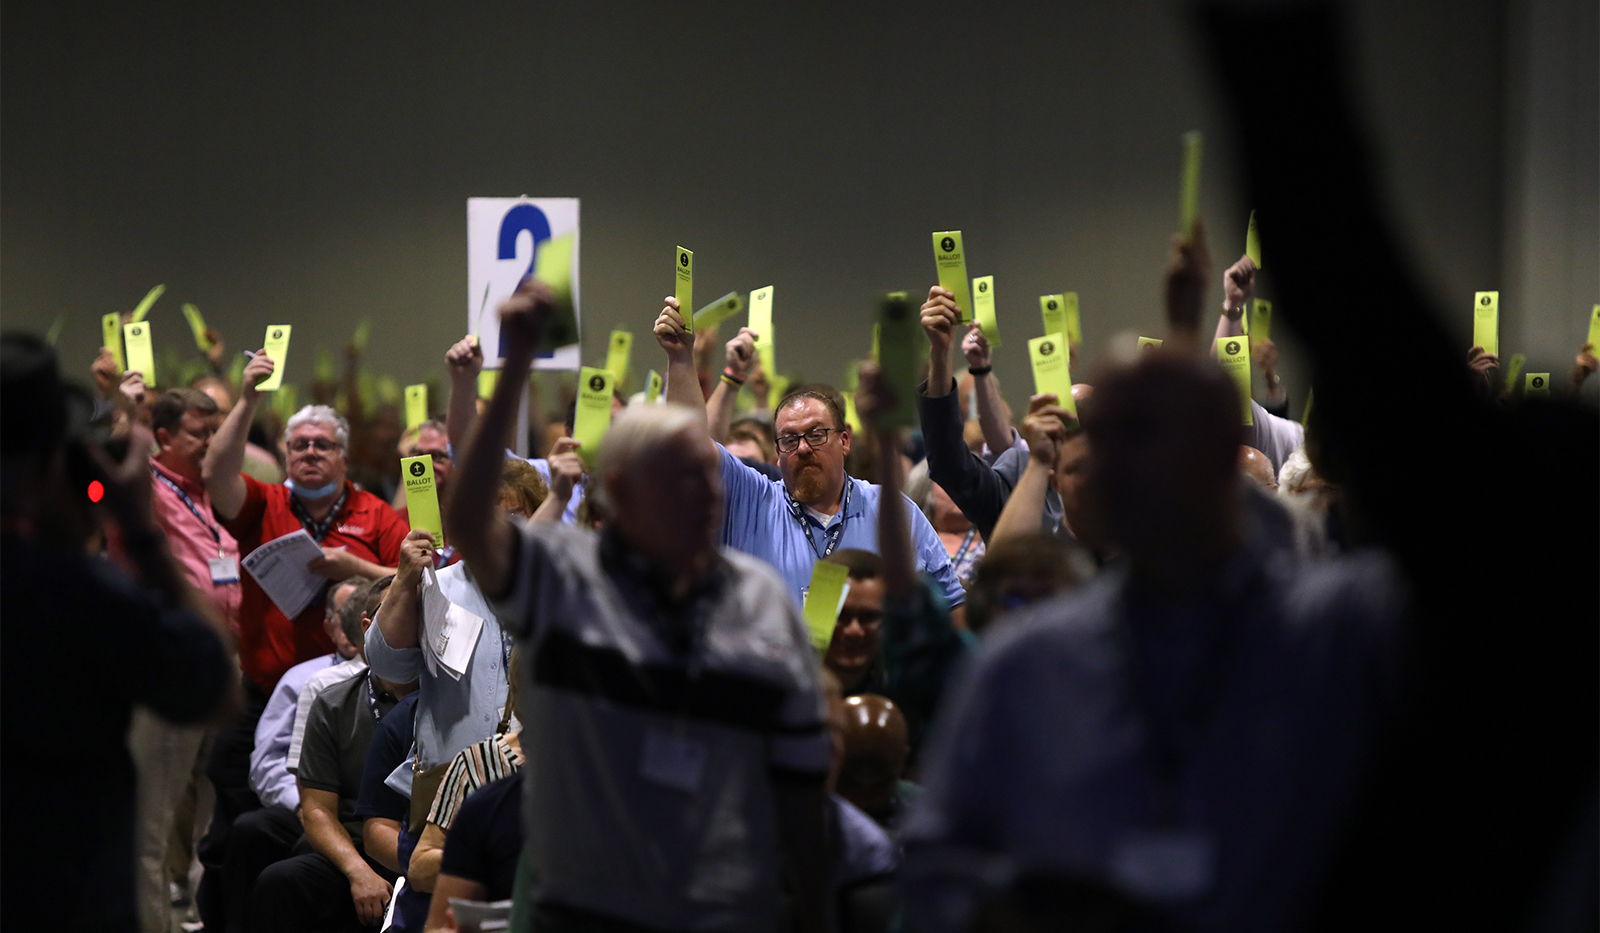 Messengers vote during the Southern Baptist Convention annual meeting at Music City Center, Tuesday, June 15, 2021, in Nashville. RNS photo by Kit Doyle